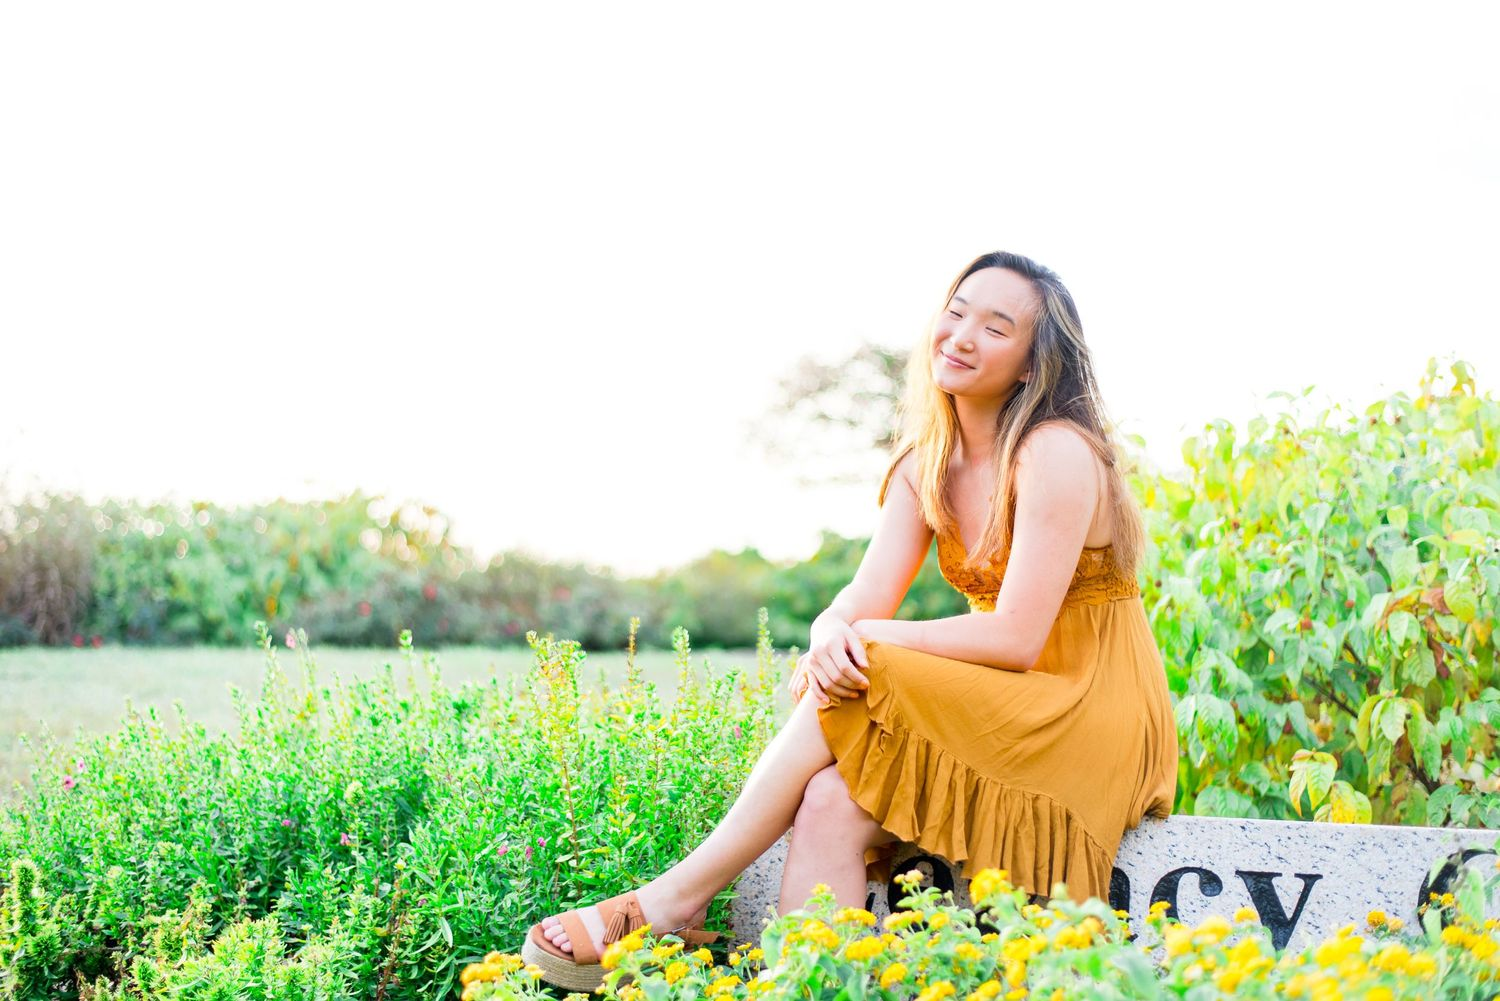 young woman sitting on a stone with legs crossed and smiling in a field of yellow flowers